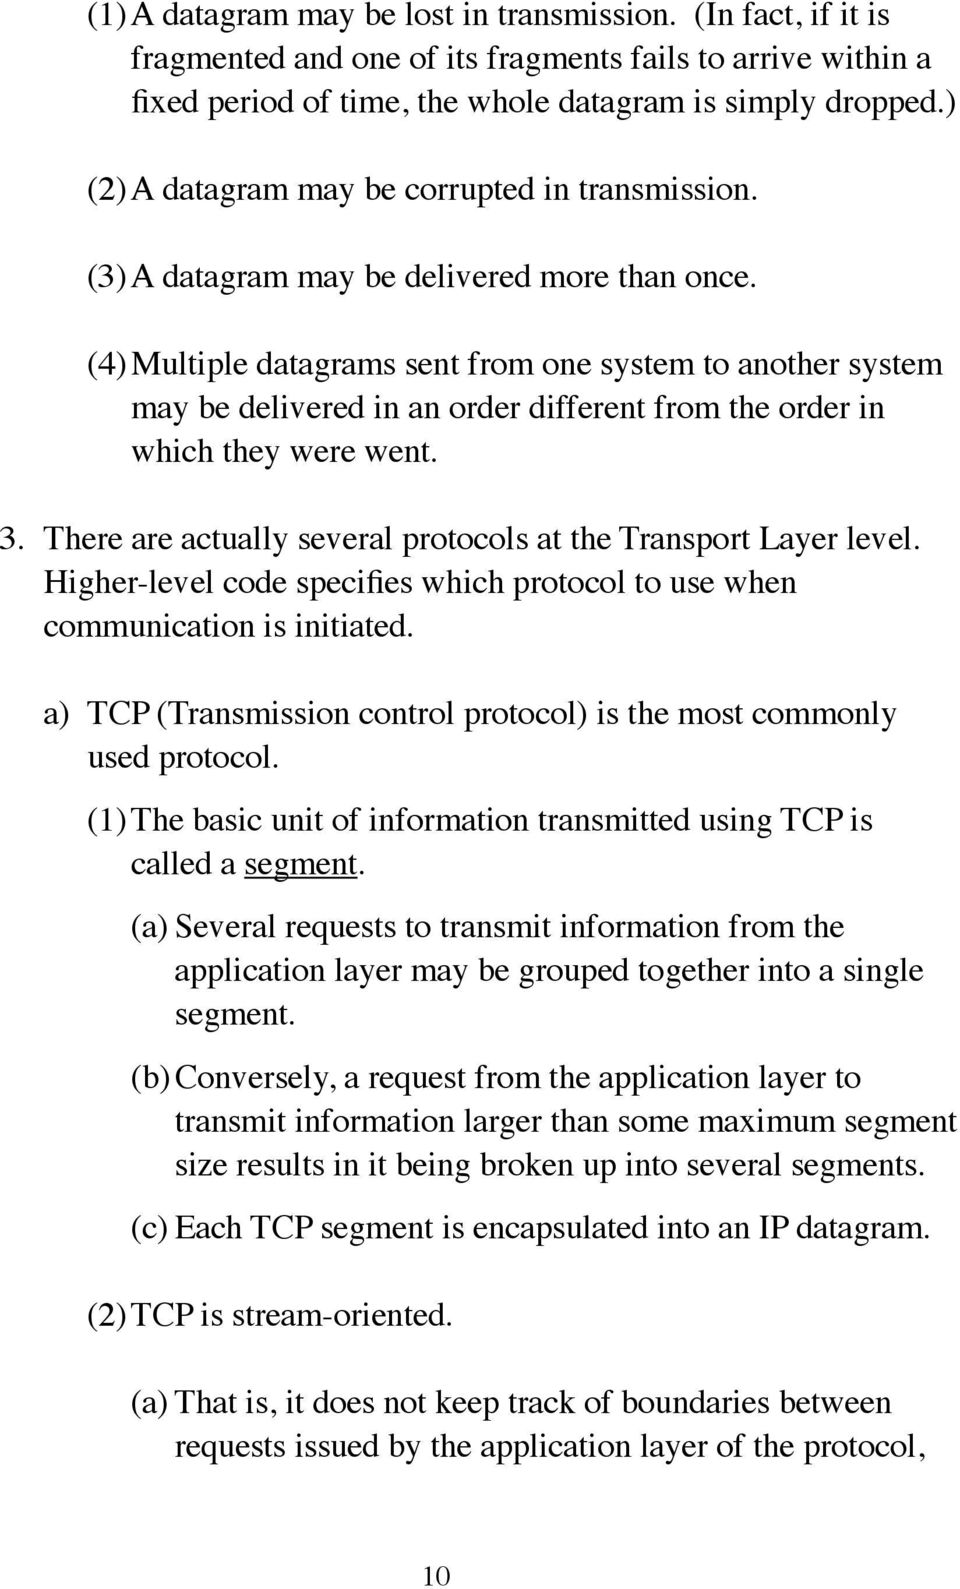 (4)Multiple datagrams sent from one system to another system may be delivered in an order different from the order in which they were went. 3.